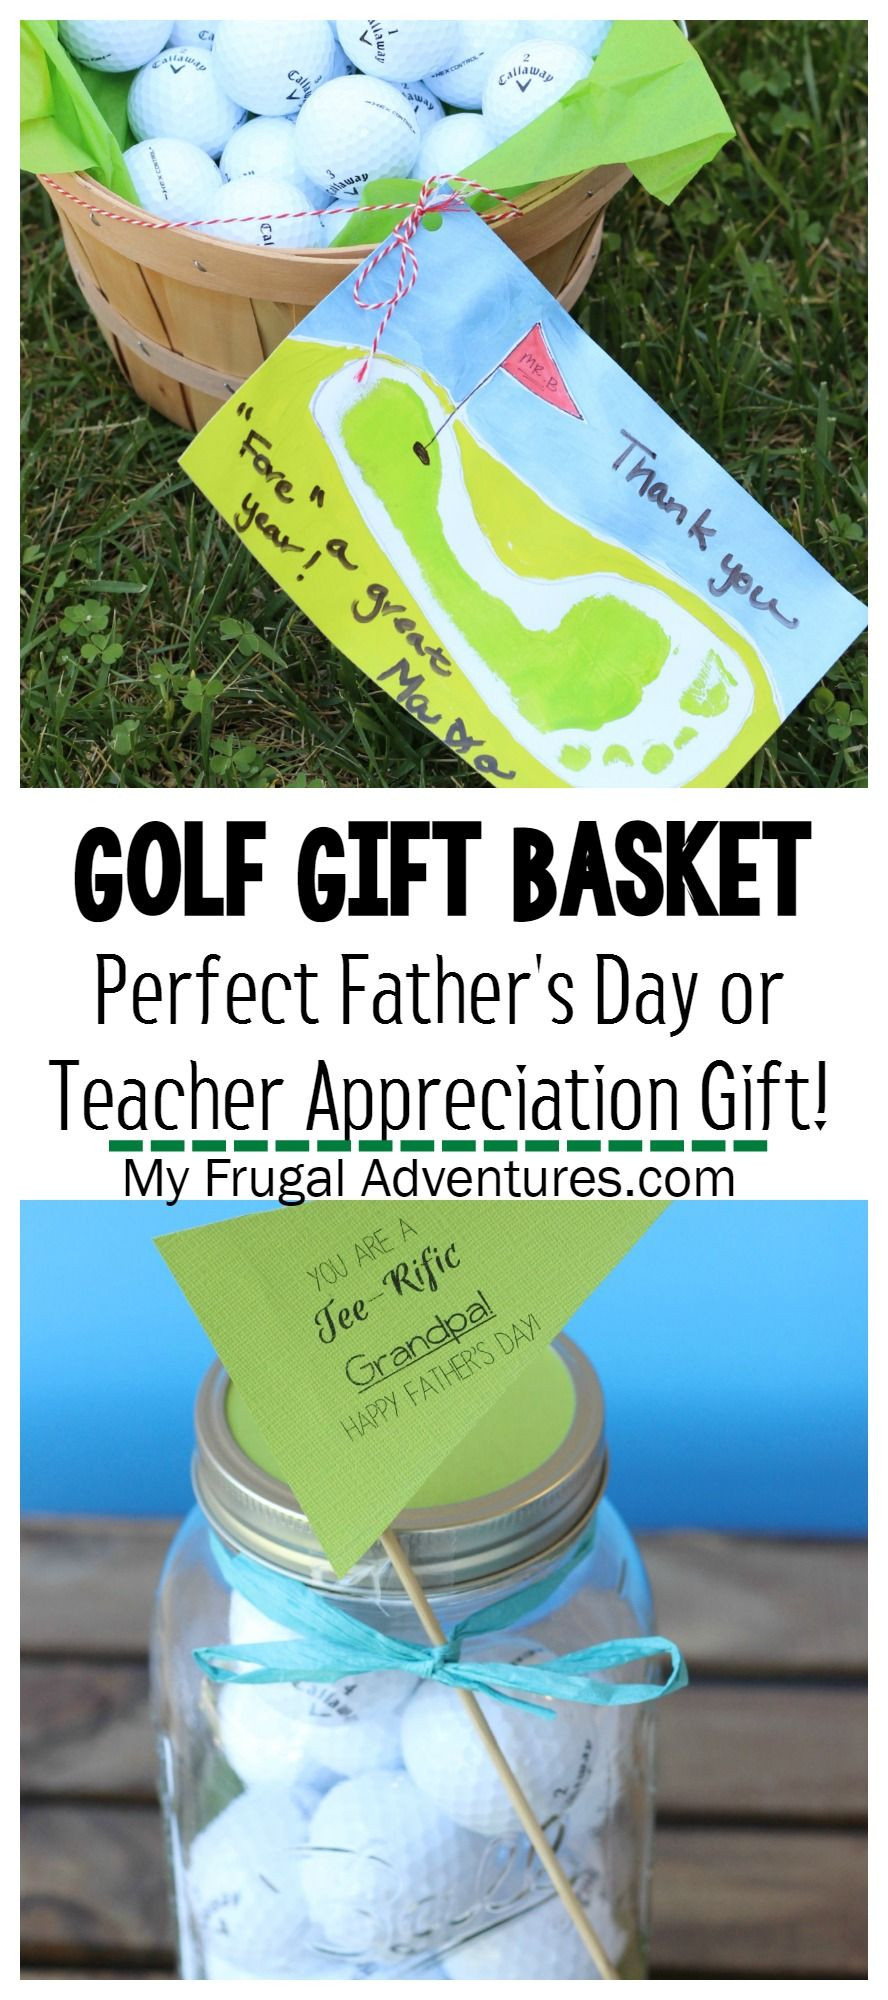 Father'S Day Golf Gift Ideas  Golf Gift Basket Teacher Appreciation Gift or Father s